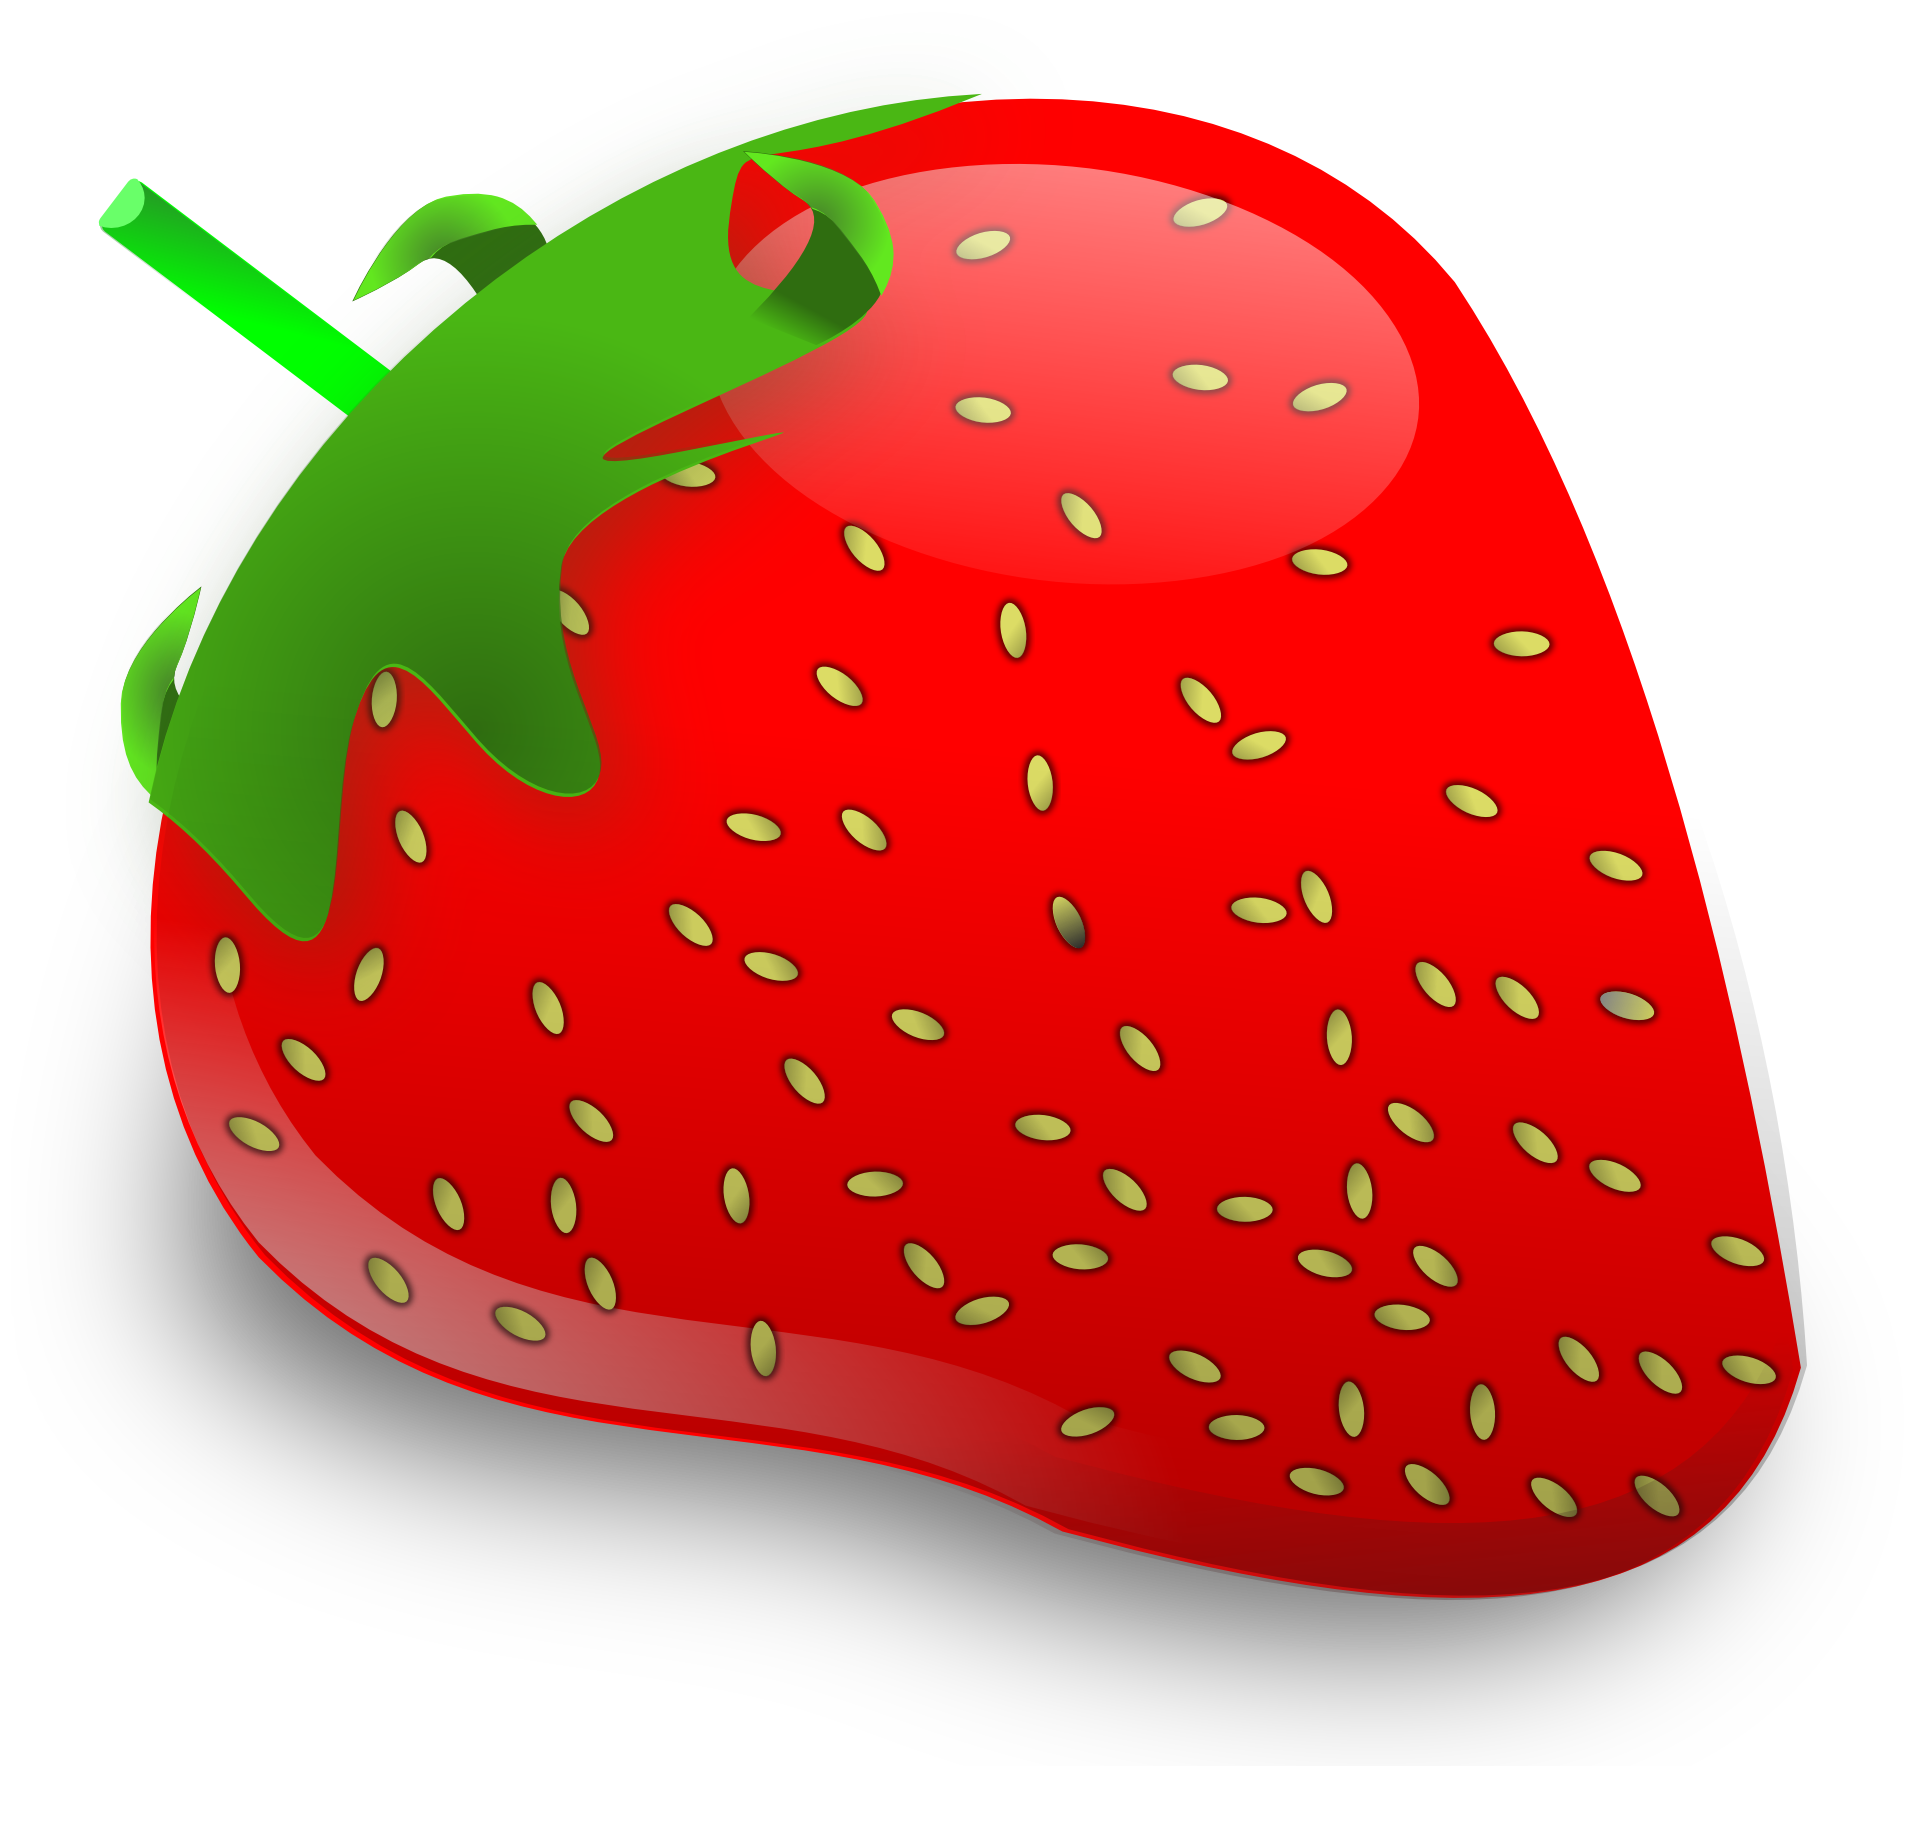 Watermelon clipart makanan. Strawberry transparent image pinterest